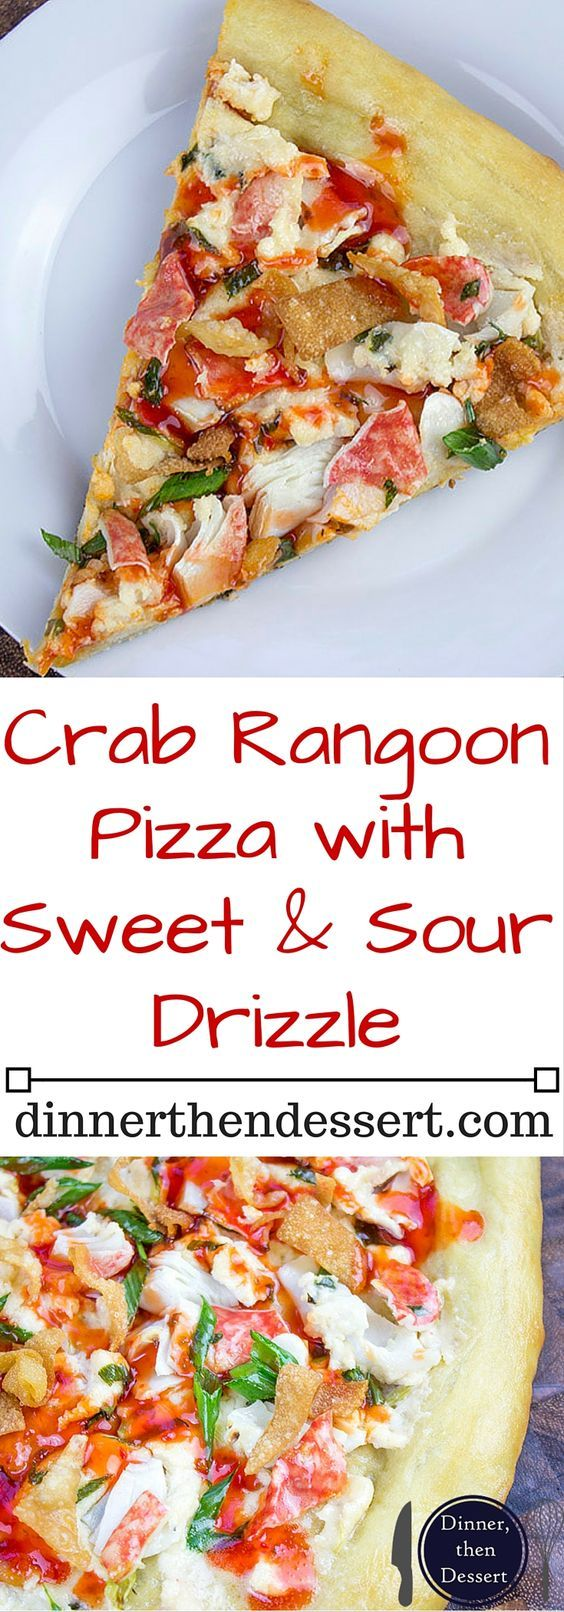 "This Crab Wonton Pizza with Sweet & Sour Drizzle is the answer to ""Pizza or Chinese?"" and in the best possible way because you can make it at home! Crunchy, creamy, sweet and sour you'll find yourselves fighting over the last slice! LKDelights AD"